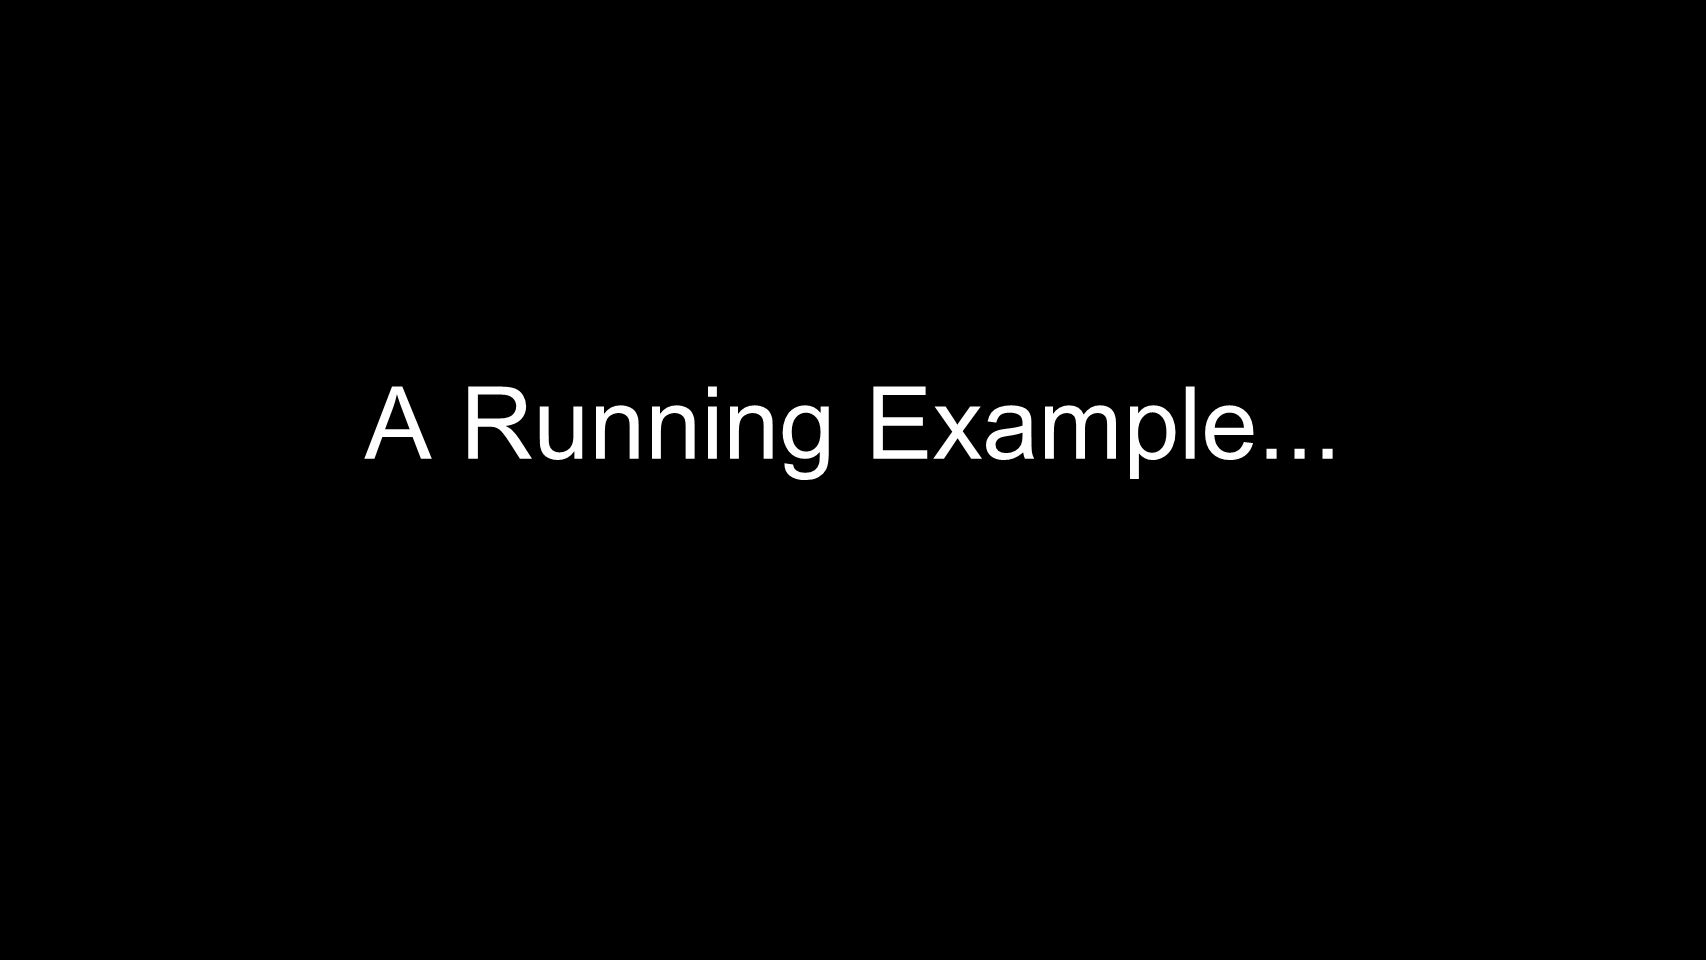 A Running Example...